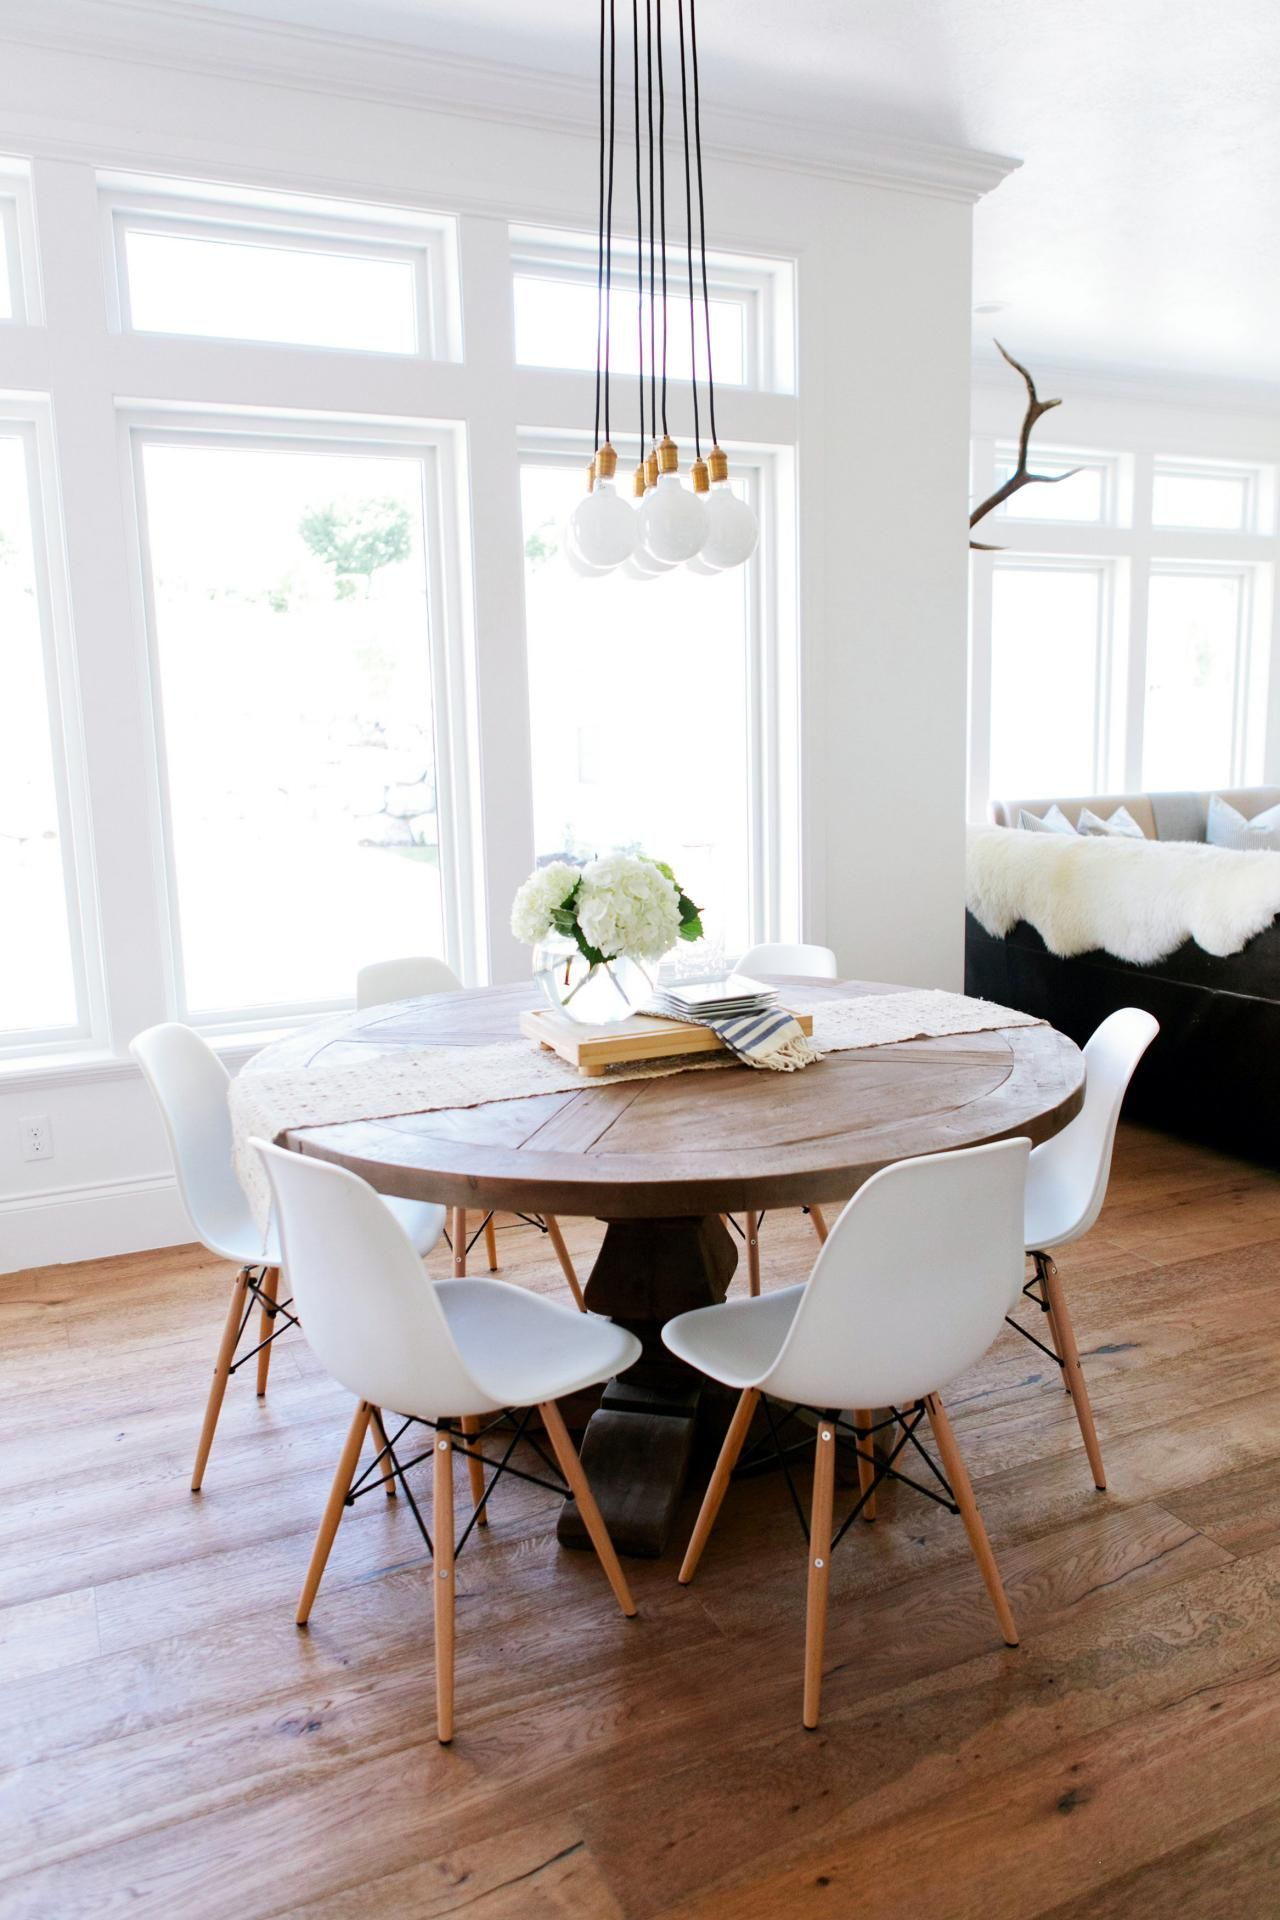 Eat In Kitchen With Rustic Round Table Midcentury Chairs Eames